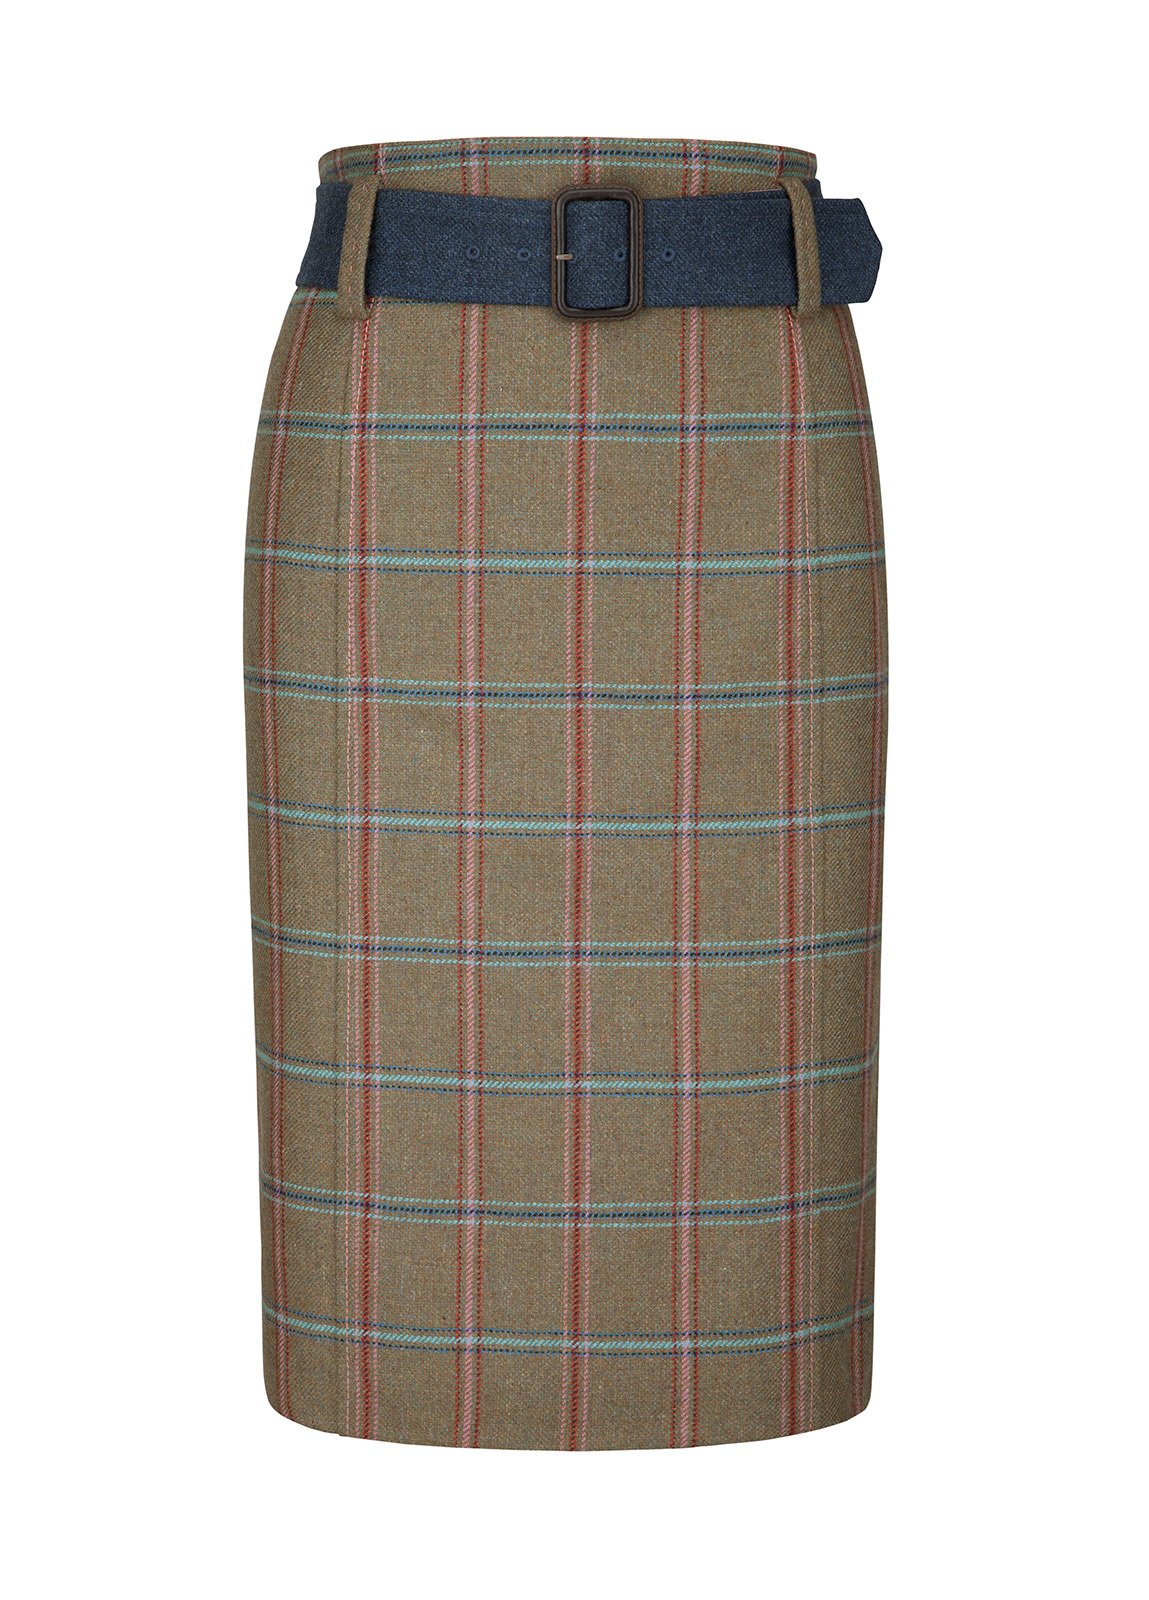 Arrowgrass Knee Length Tweed Skirt - Olive